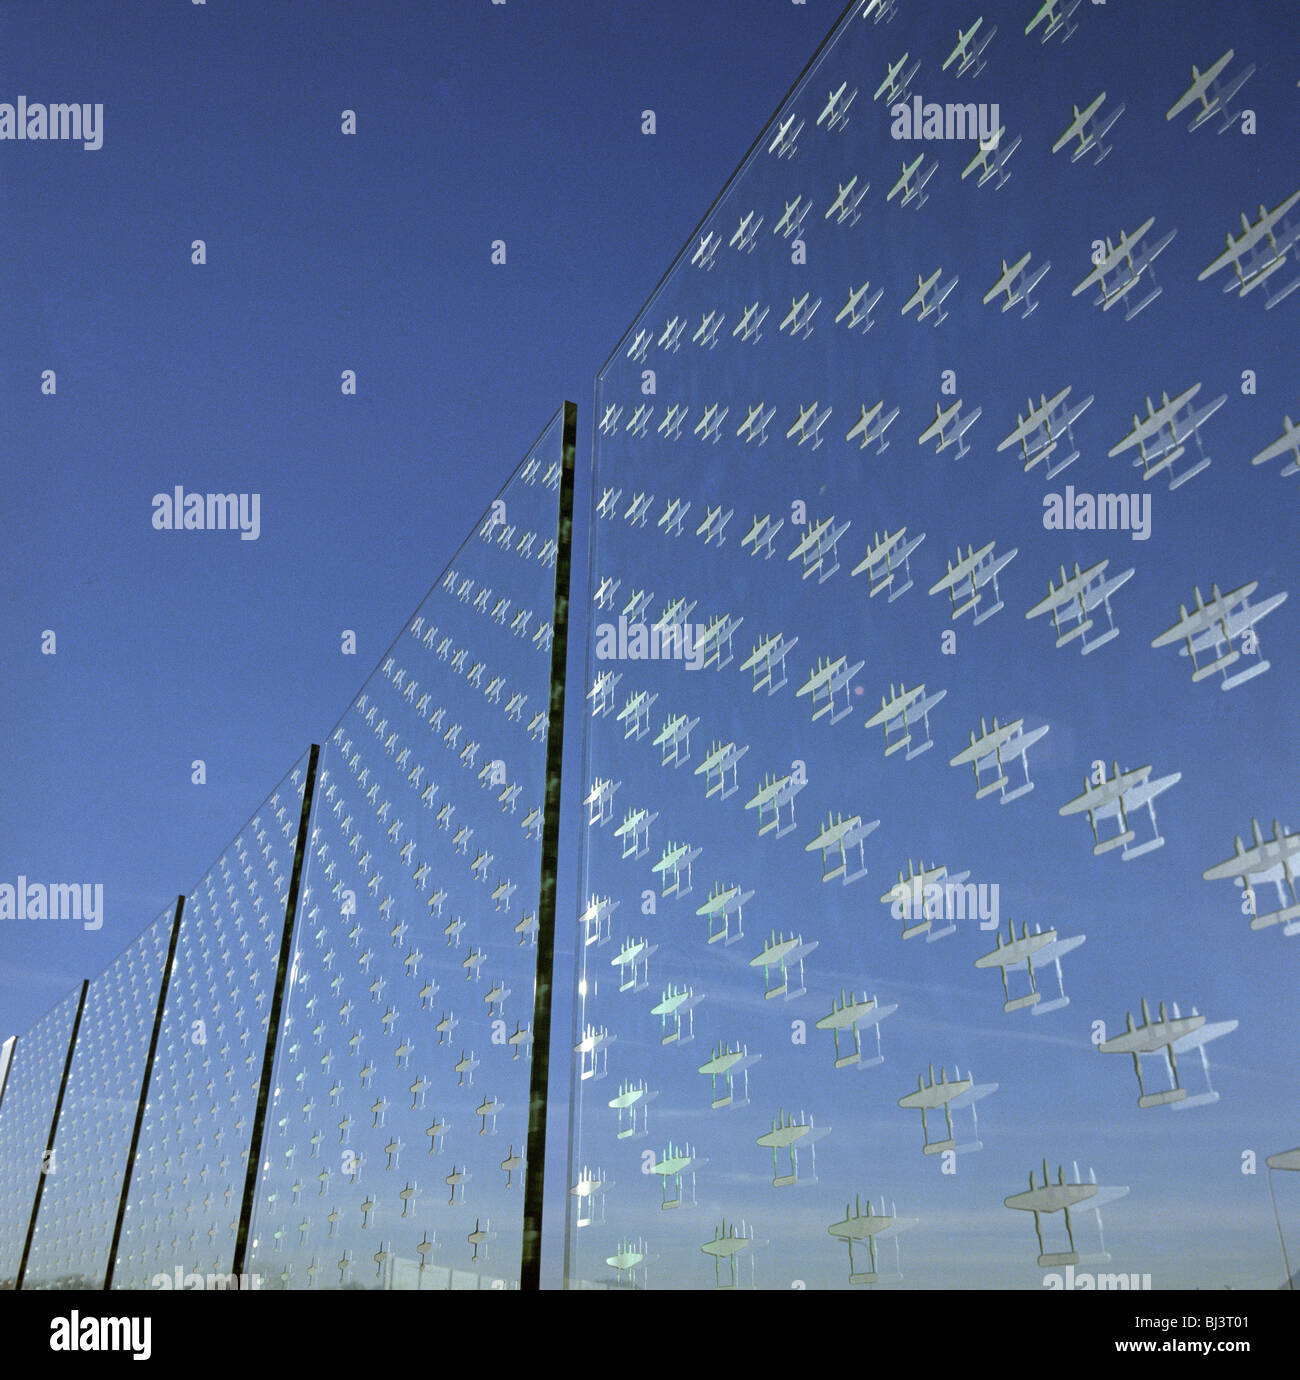 52 glass panels etched with the outlines of 7,031 aircraft missing in action flown by American air forces from Britain - Stock Image